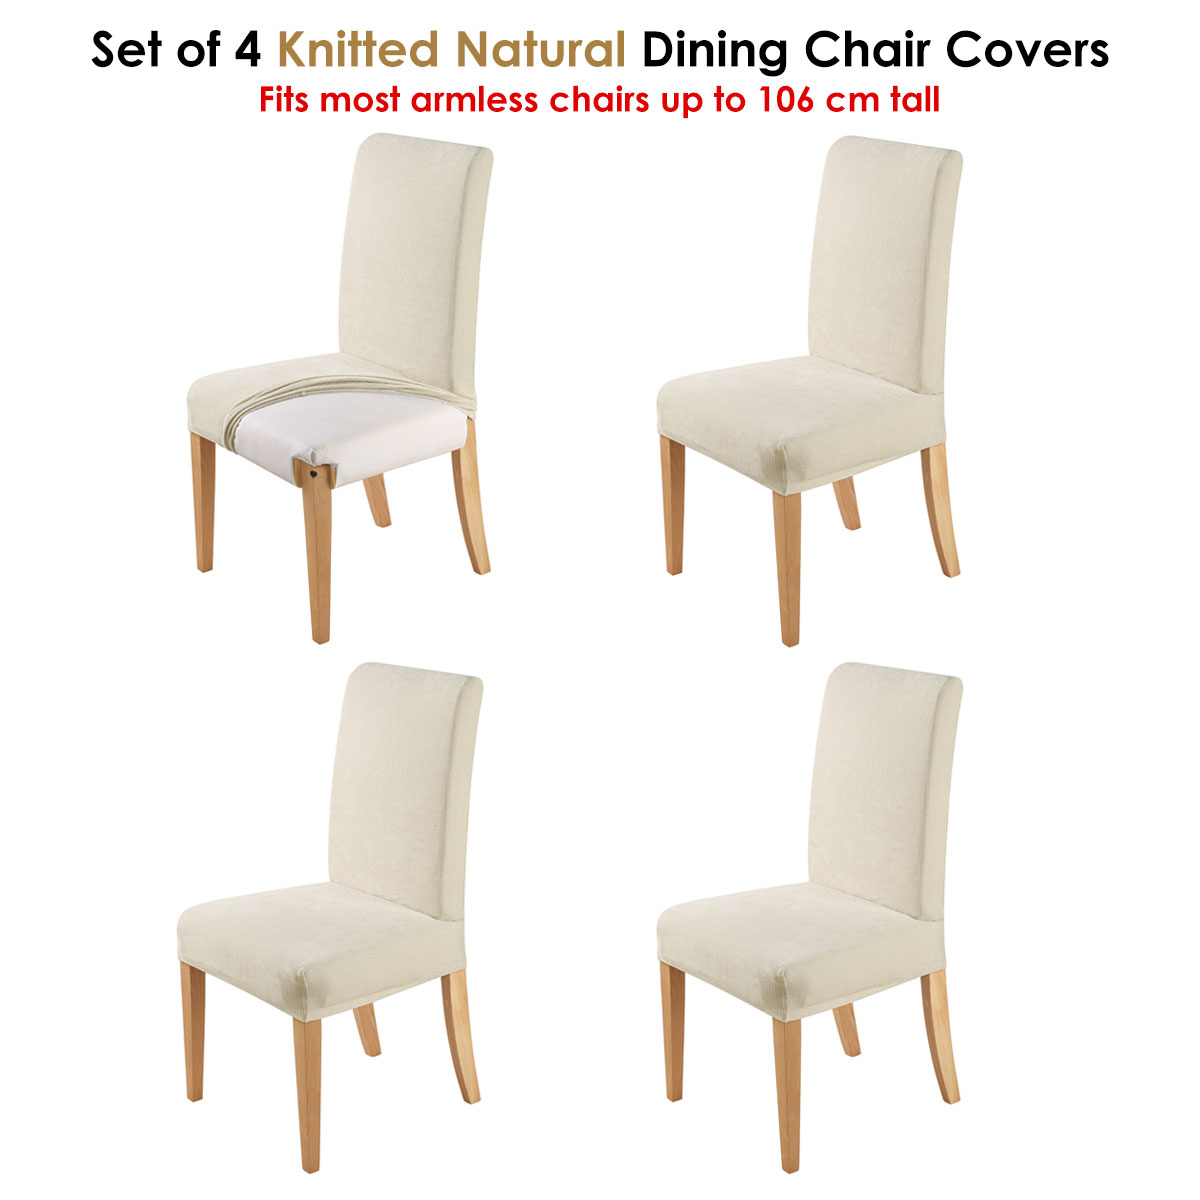 Set Of 4 Easy Fit Stretch Dining Chair Covers Knitted Natural By Home Innovat Ebay